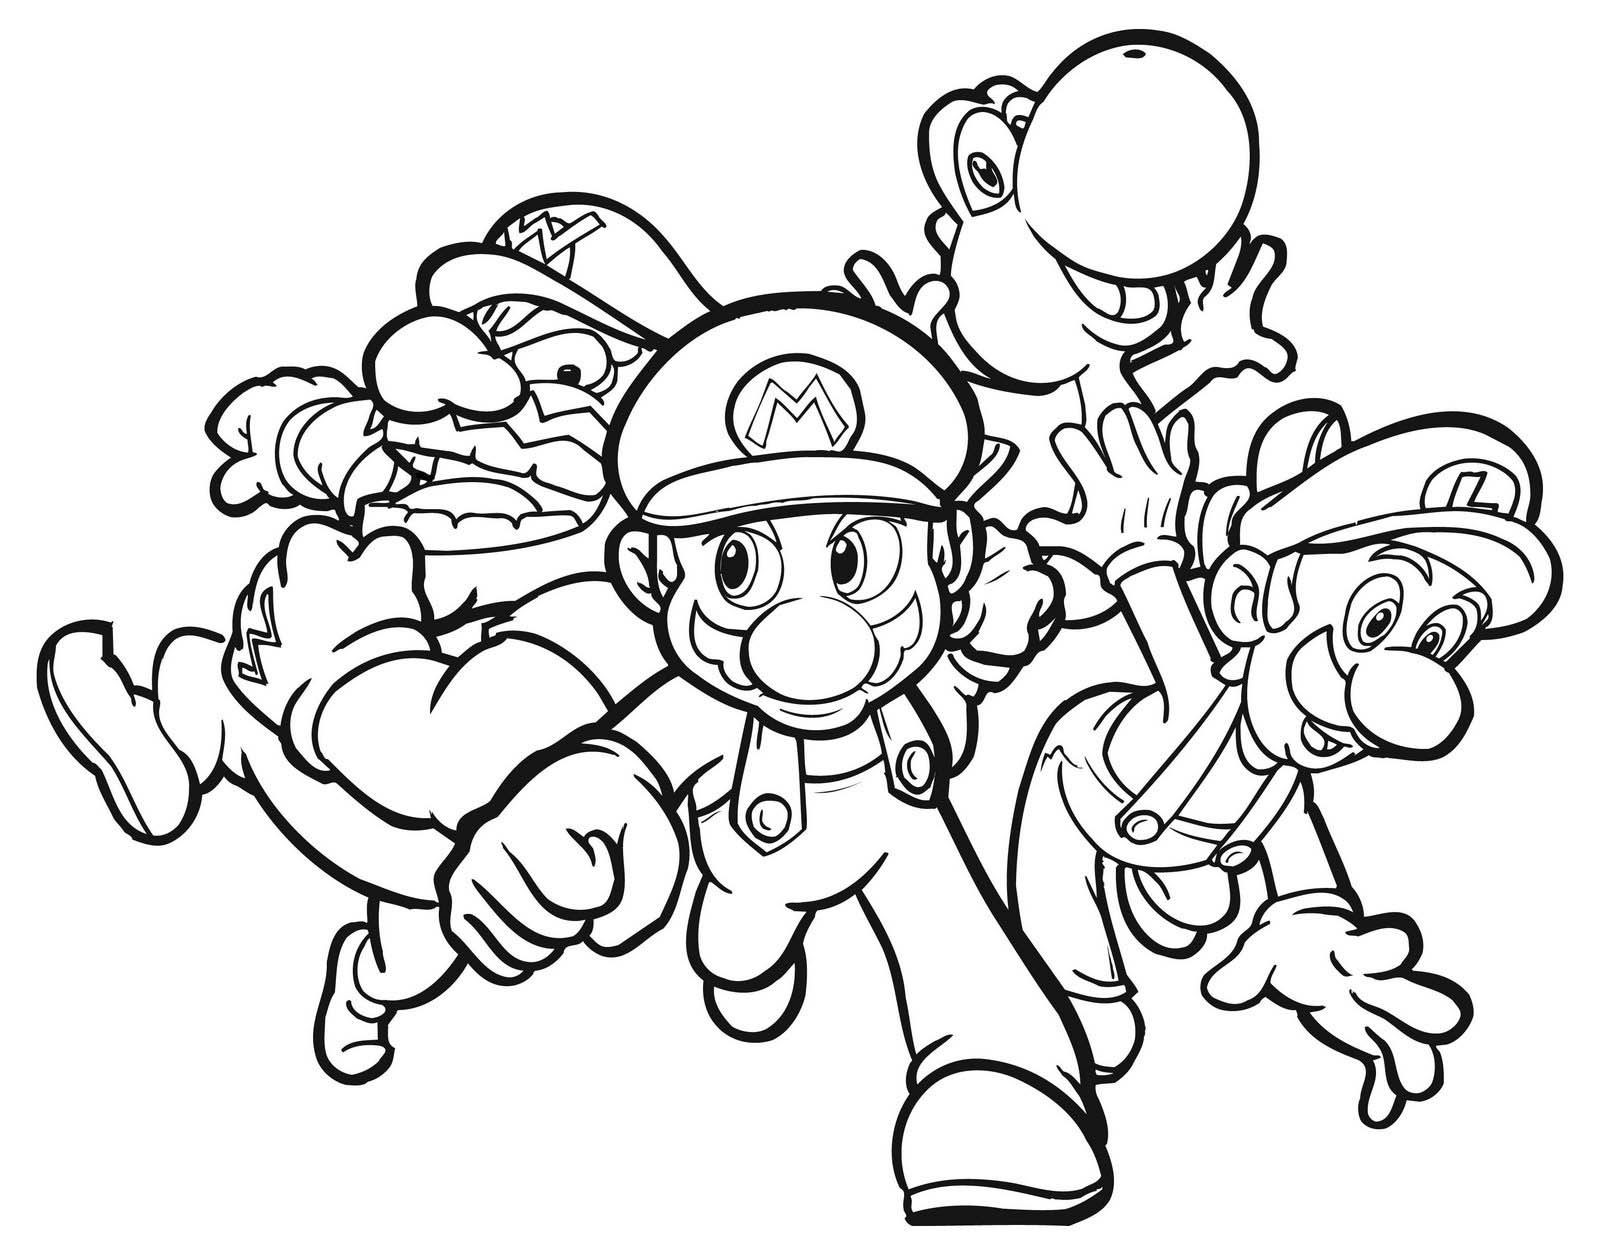 1600x1255 Mario Coloring Pages Online Acpra